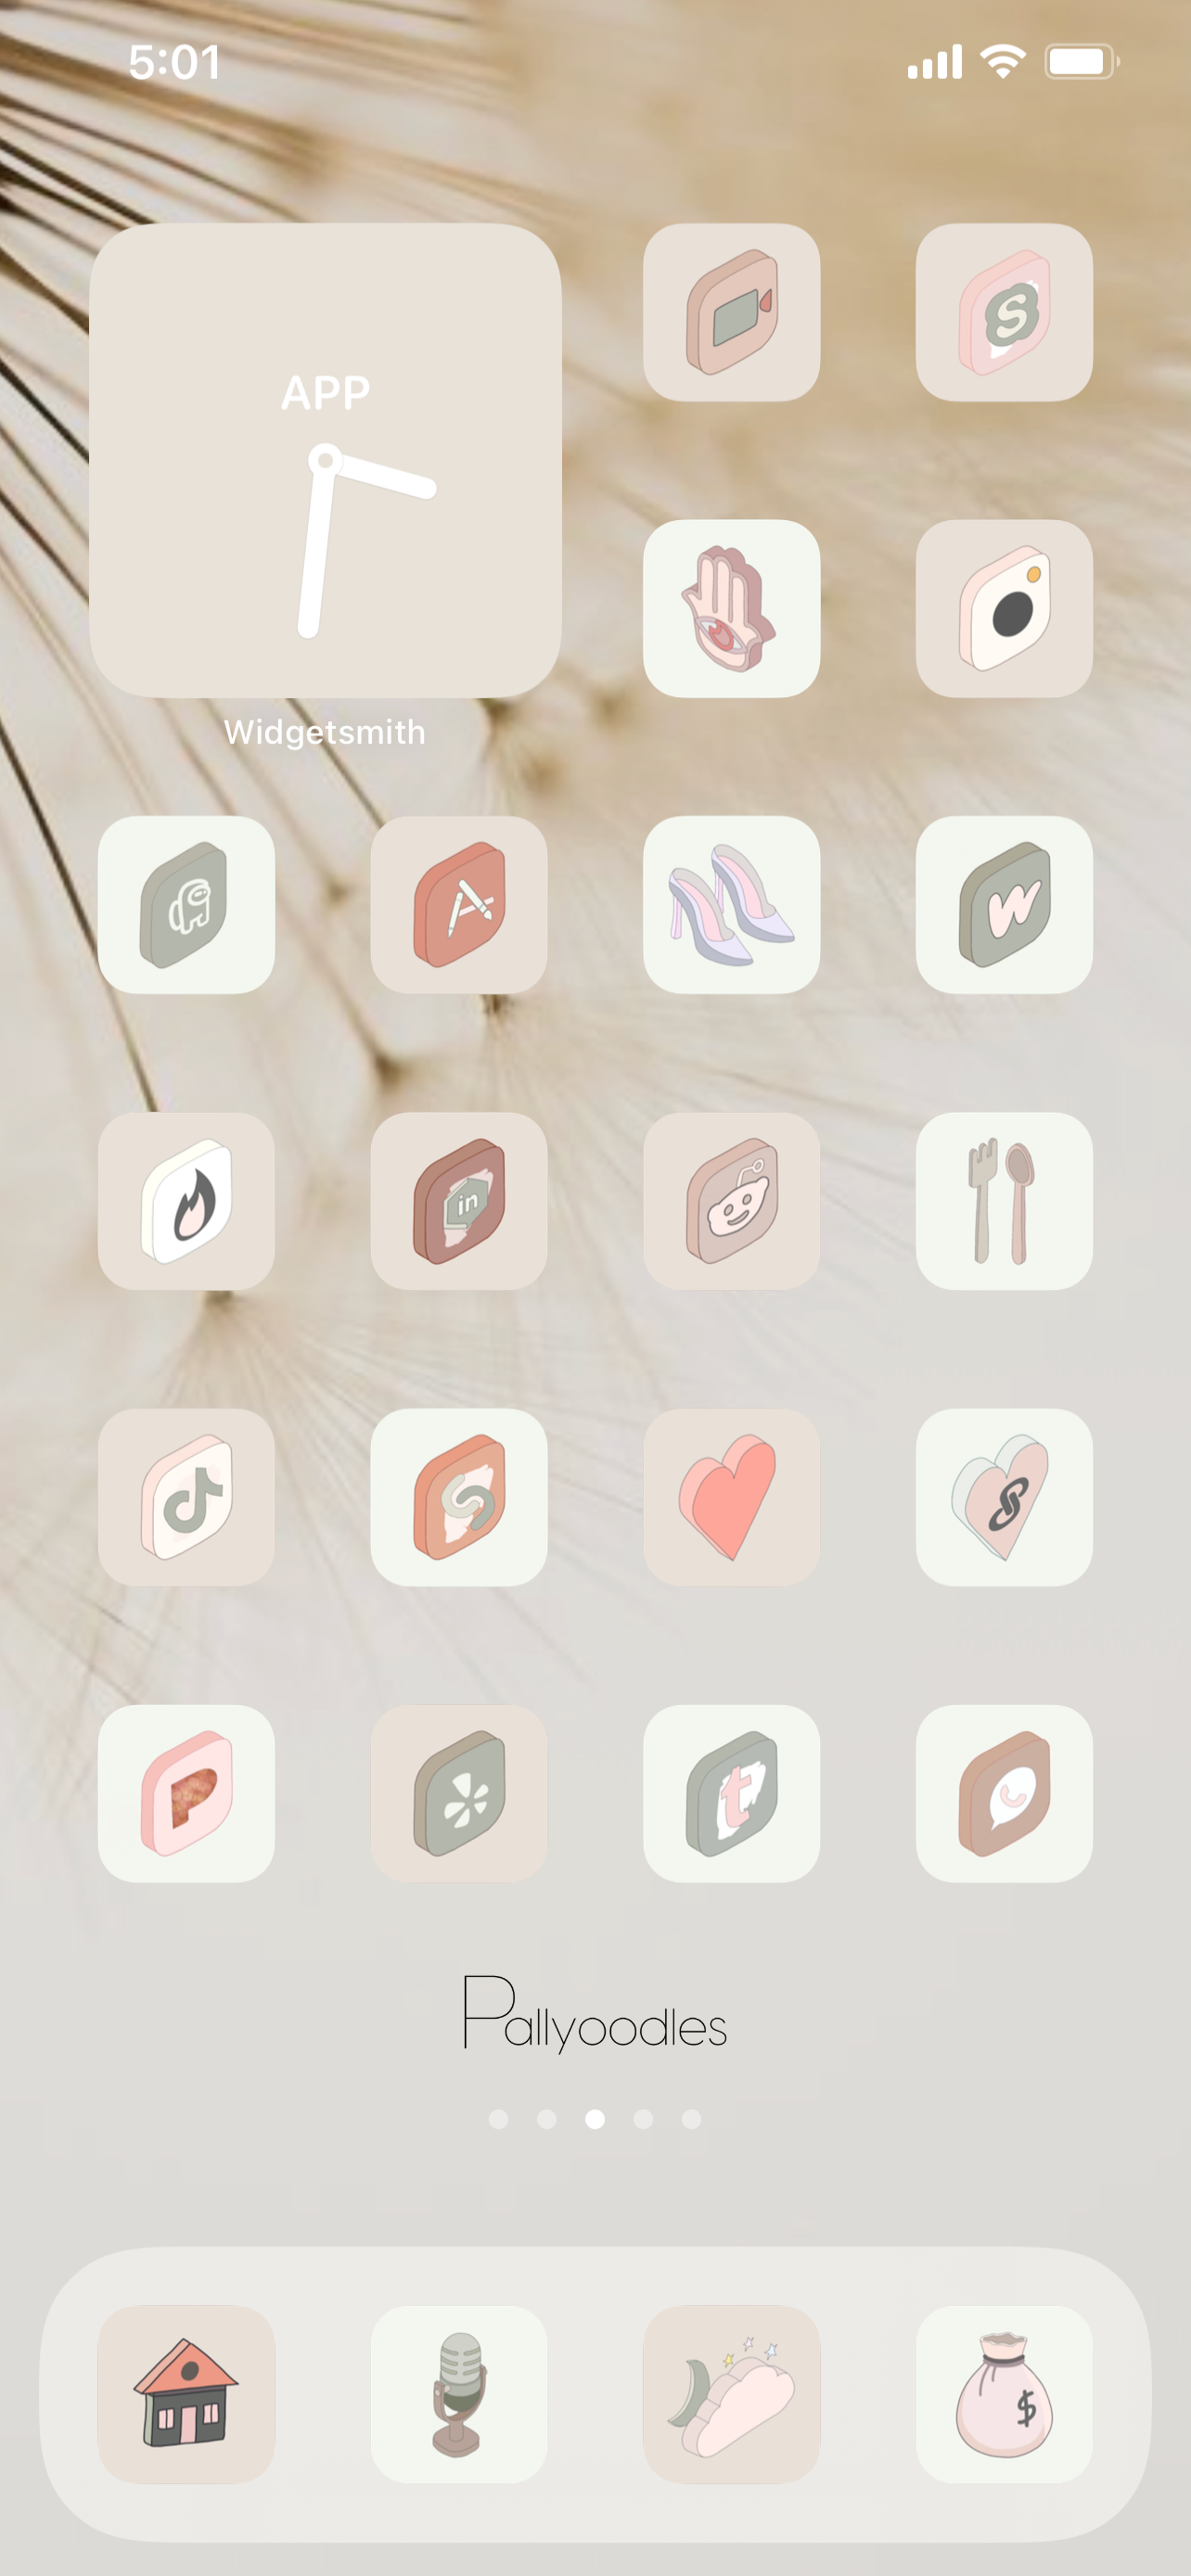 04/11/2020· 9 ios minimalist/beige/neutral wallpaper and app icons for your home screens. 100 Neutral Beige 3D Doodle Aesthetic iOS 14 App Icons ...